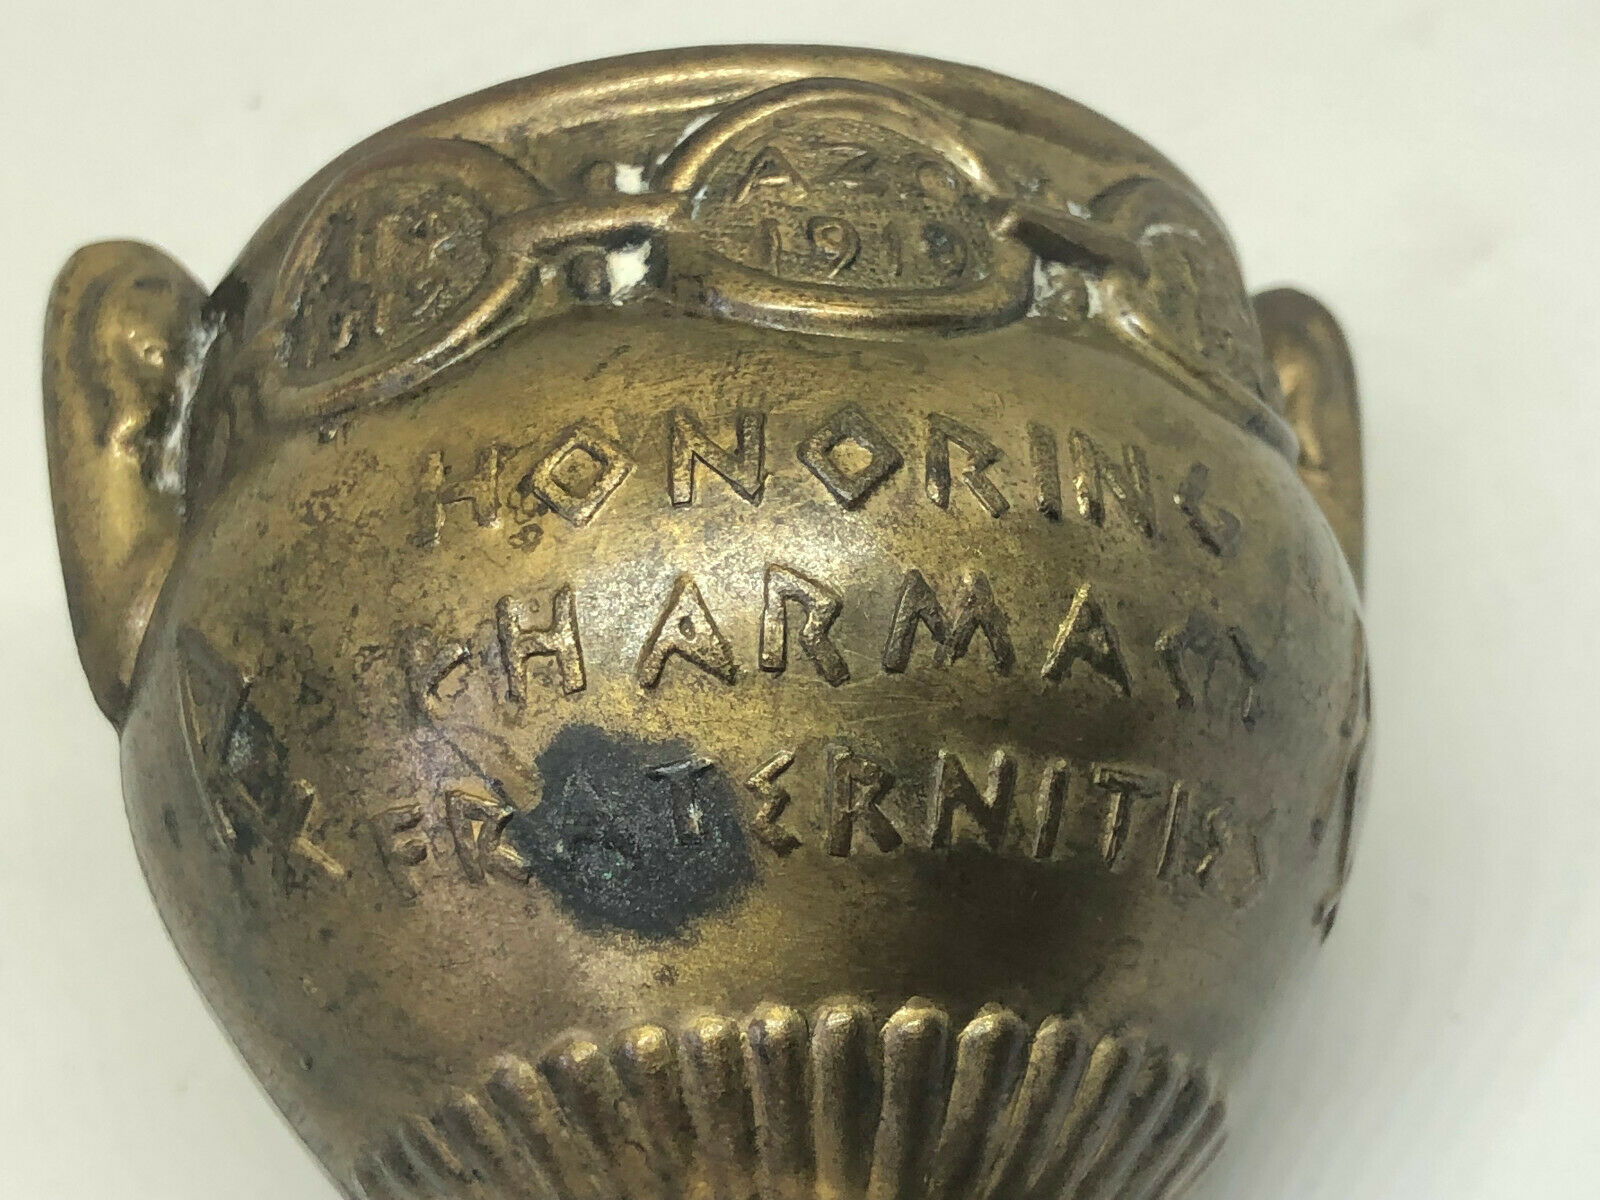 "Antique Vintage Brass Mortar Honoring Pharmacy Fraternities 2.5"" Secumdum Artem"